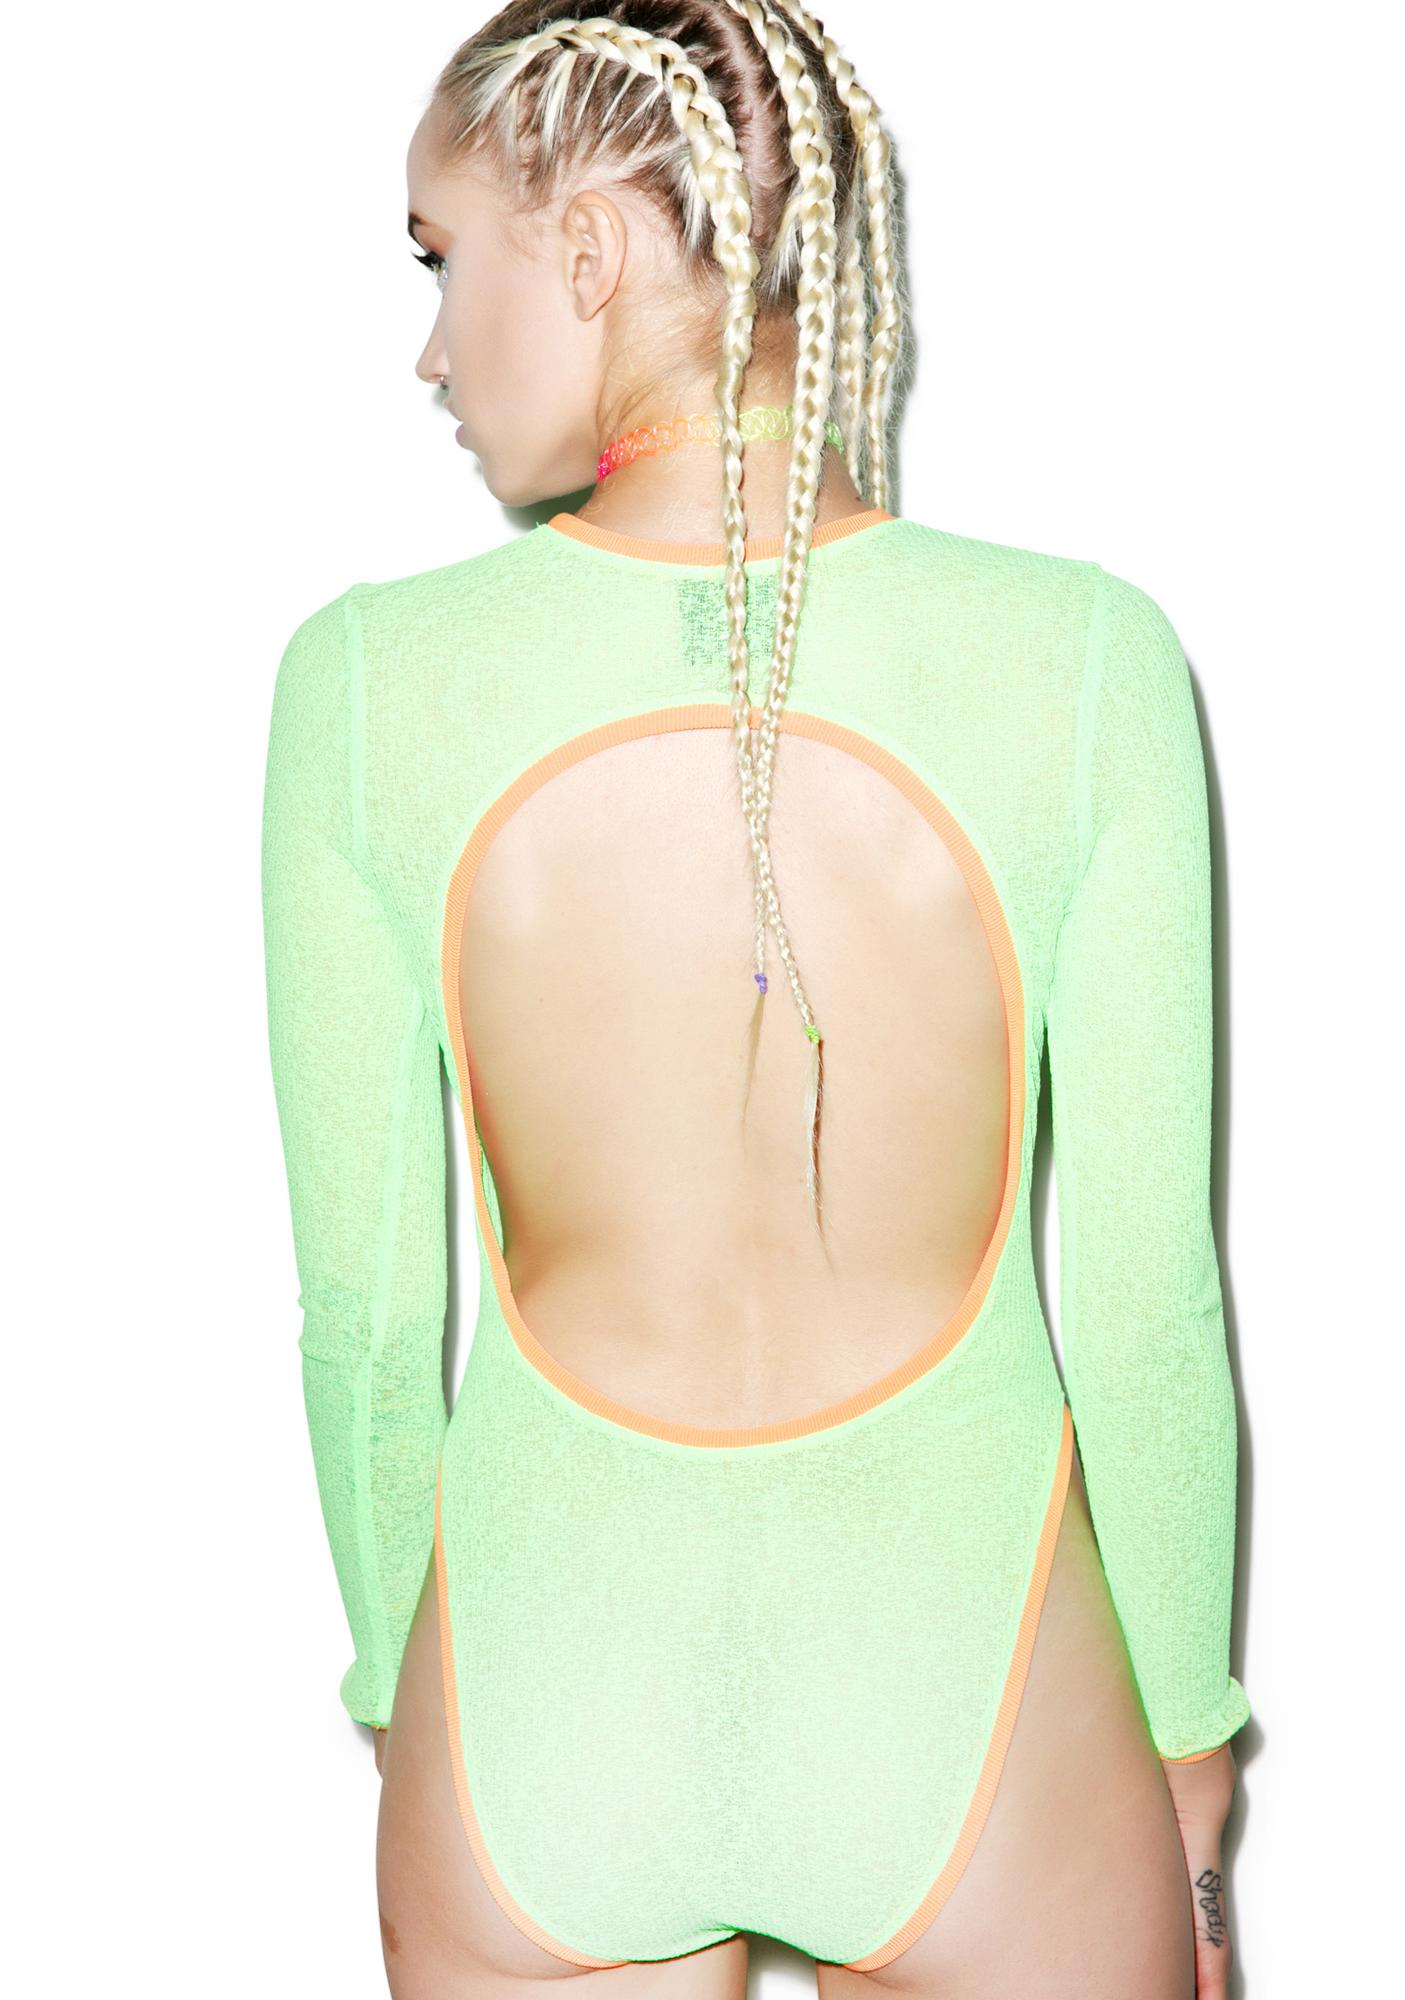 Mamadoux Slime Suit